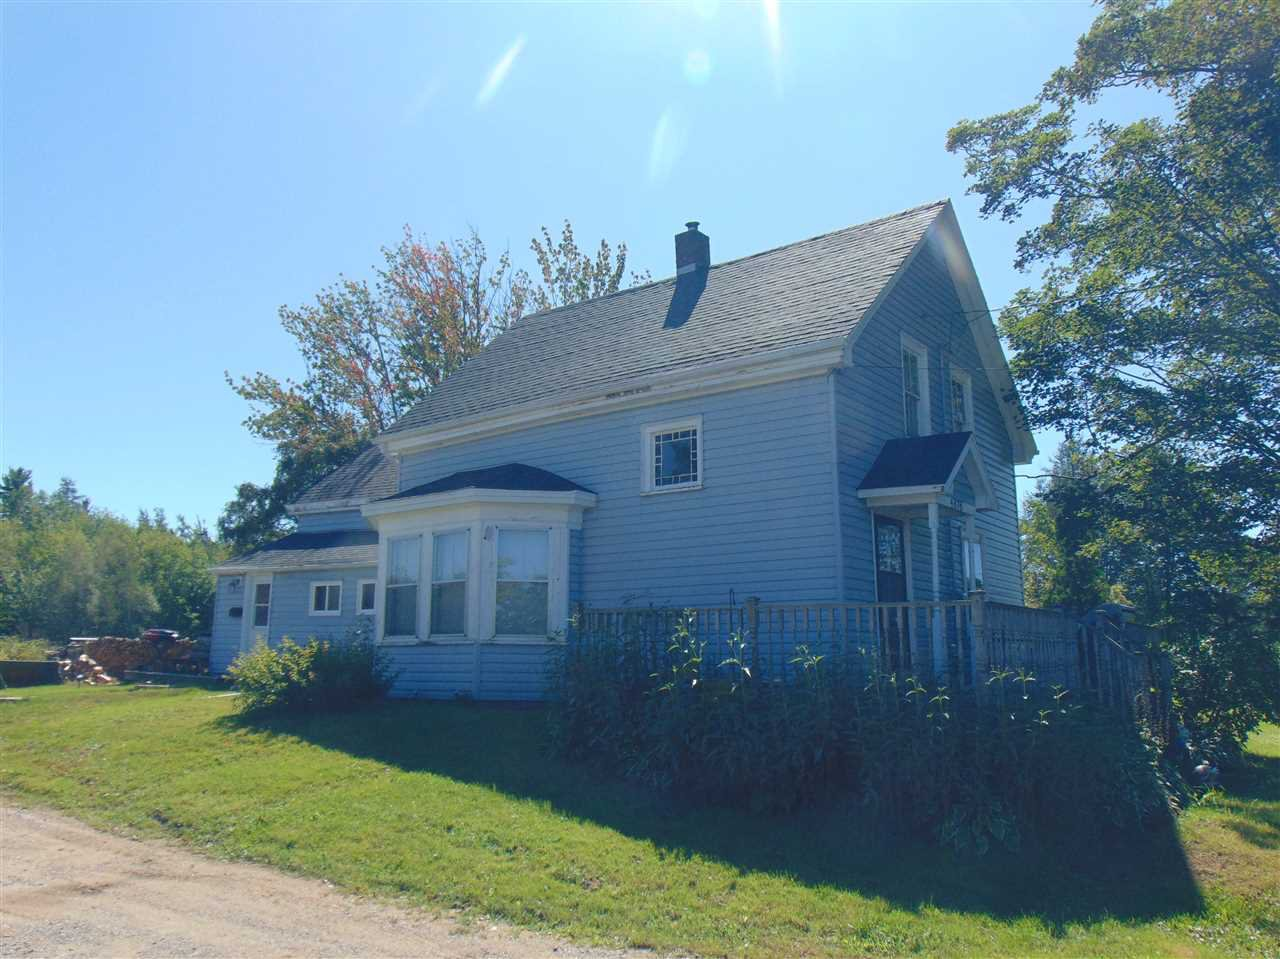 Main Photo: 4876 BROOKLYN Street in Somerset: 404-Kings County Residential for sale (Annapolis Valley)  : MLS®# 201921541